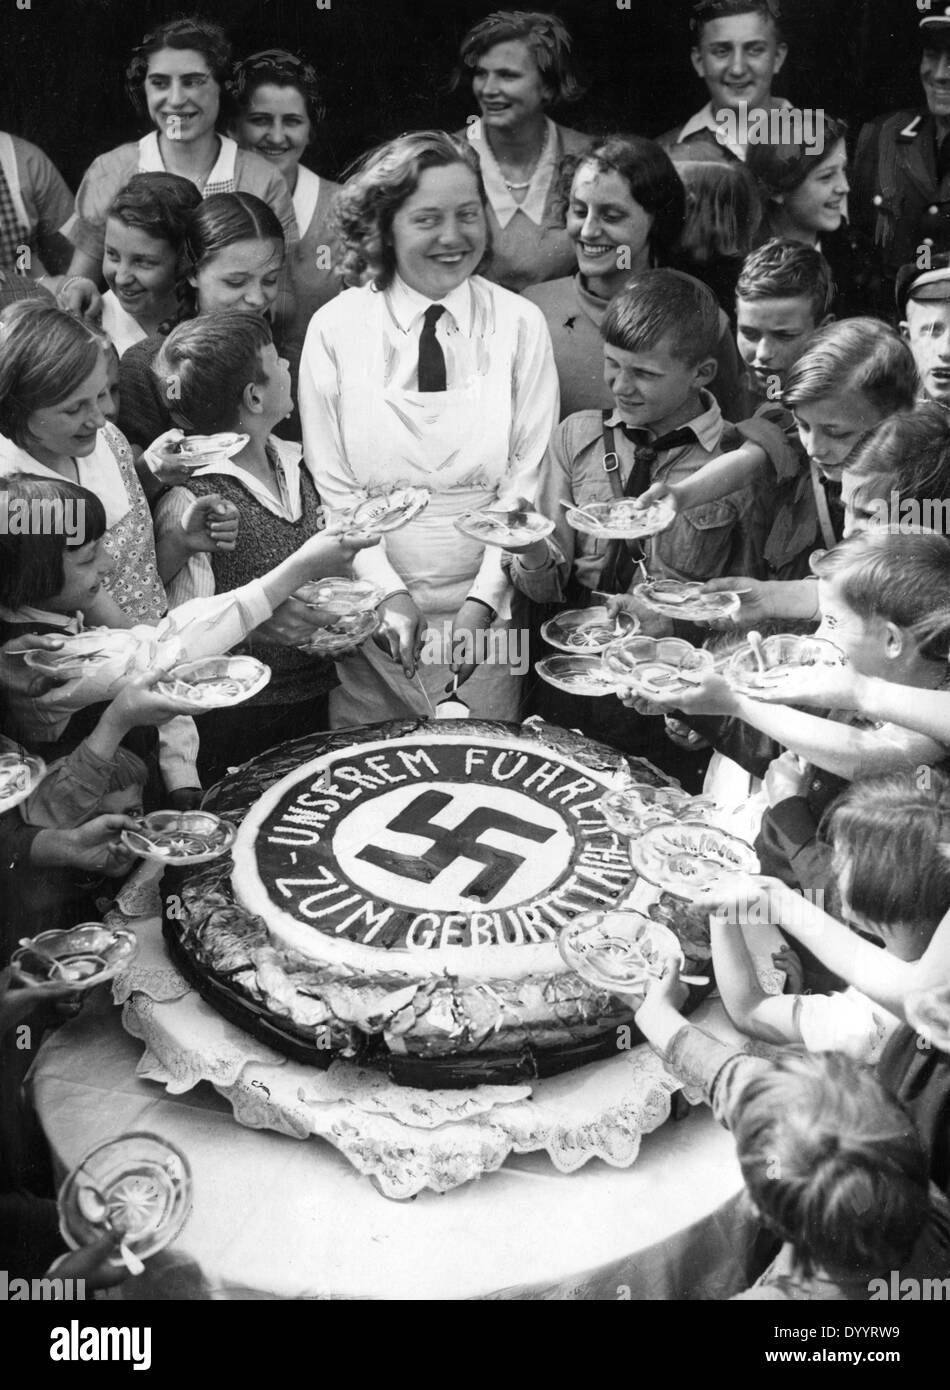 Phenomenal Cake For Hitler 1933 Stock Photo 68838261 Alamy Funny Birthday Cards Online Alyptdamsfinfo